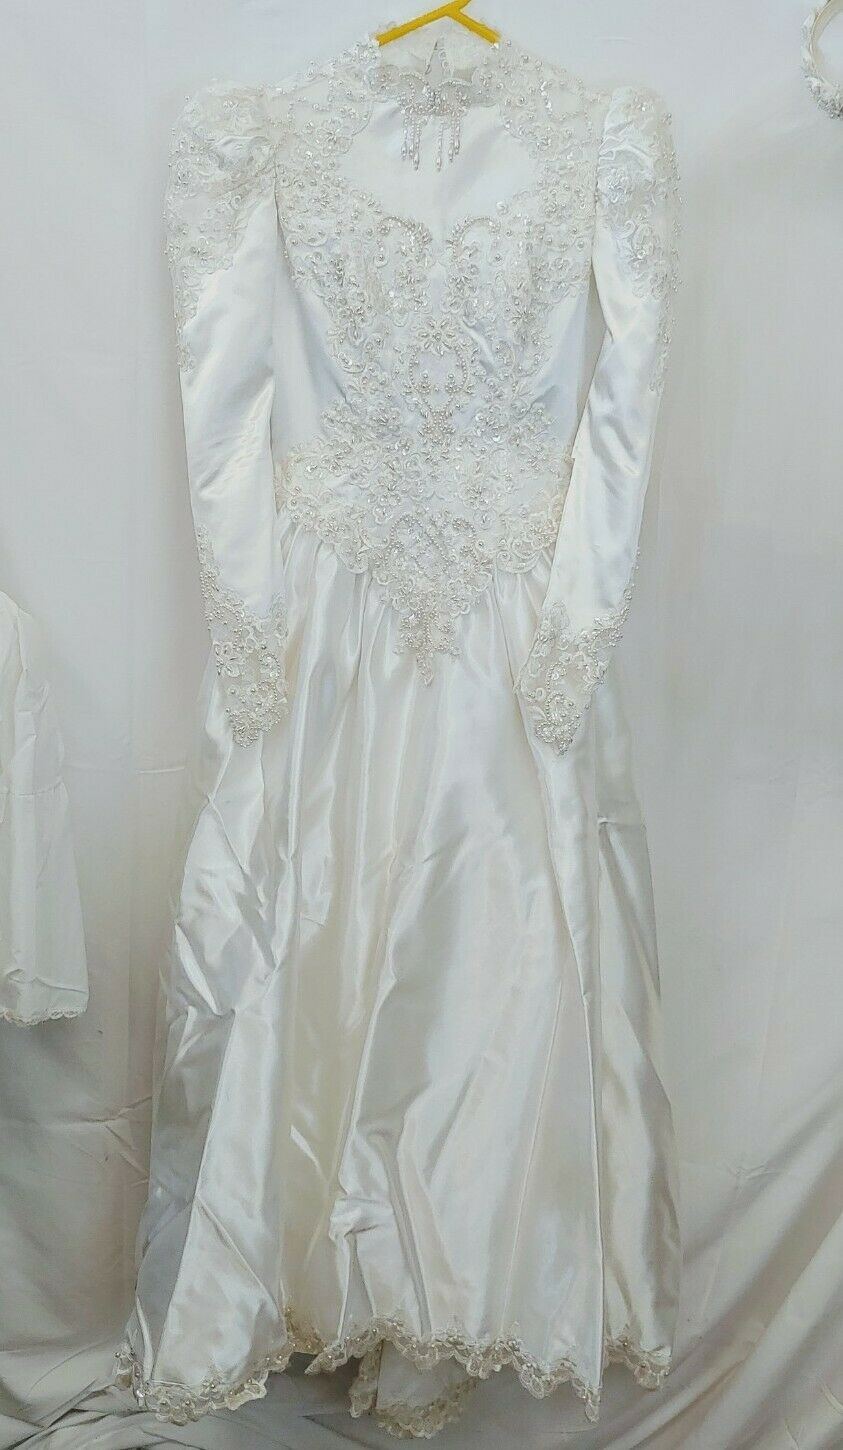 Vintage Michaelangelo Beaded wedding gown sz 4 with Vale and Under Skirt Ivory